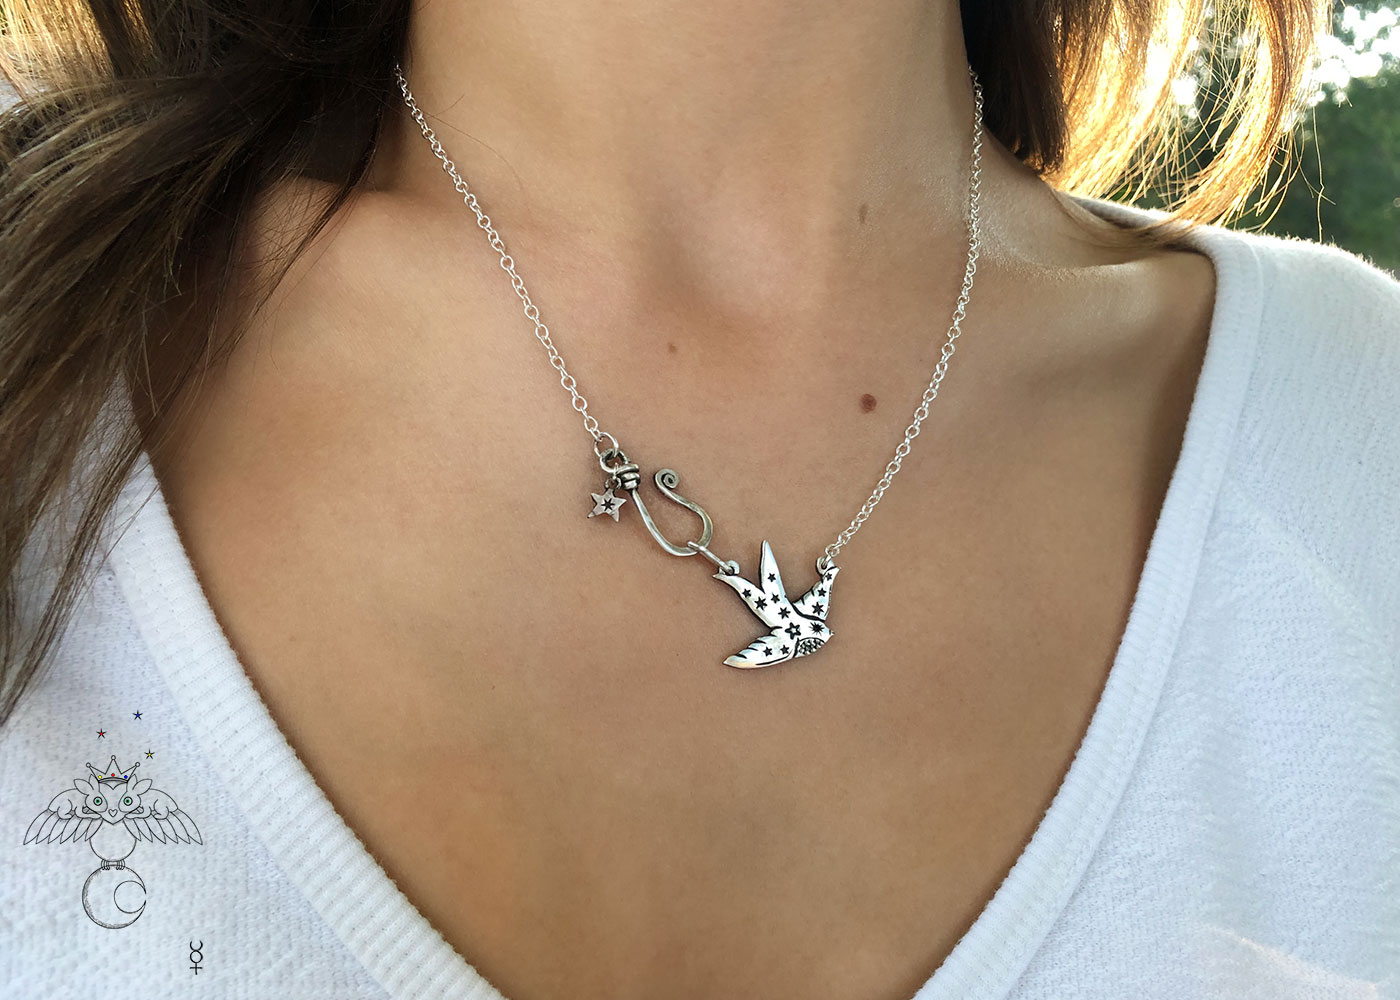 Swallow necklace handcrafted and recycled coin jewellery made from a silver Florin coin. Ethical jewellery made in an artisan workshop